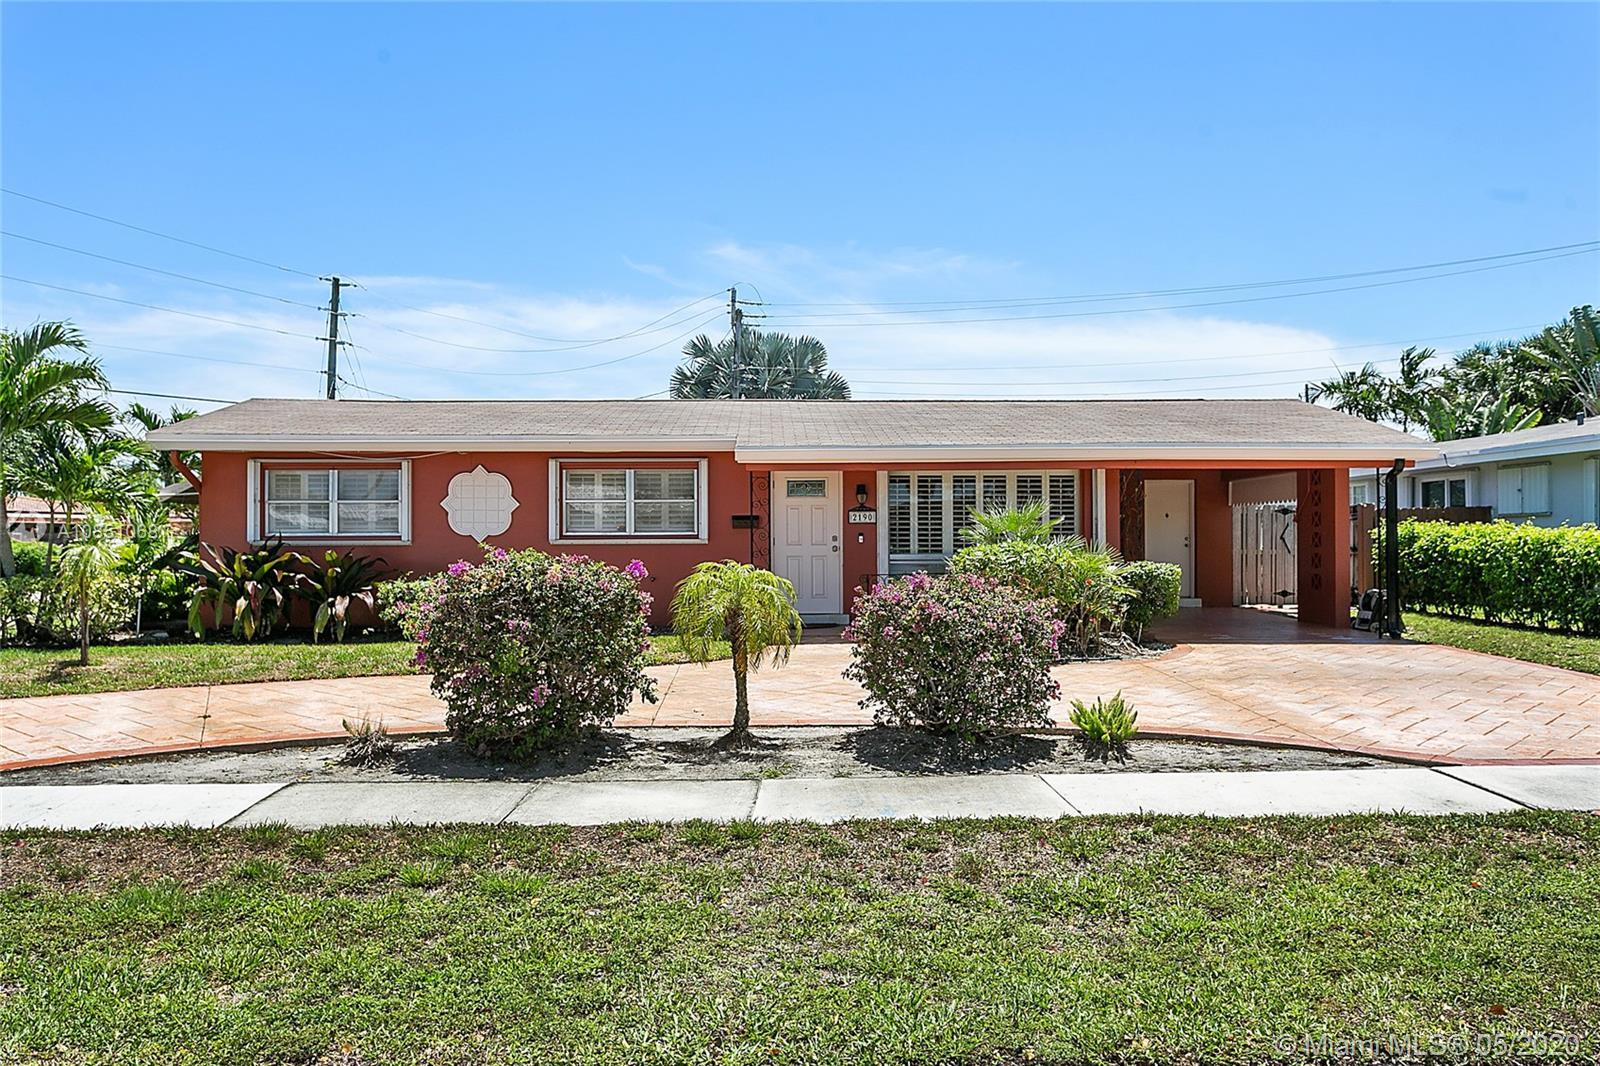 Quiet, Cozy 3 bedroom, 2 bath single family residence in a great area of Imperial Point. All mechani